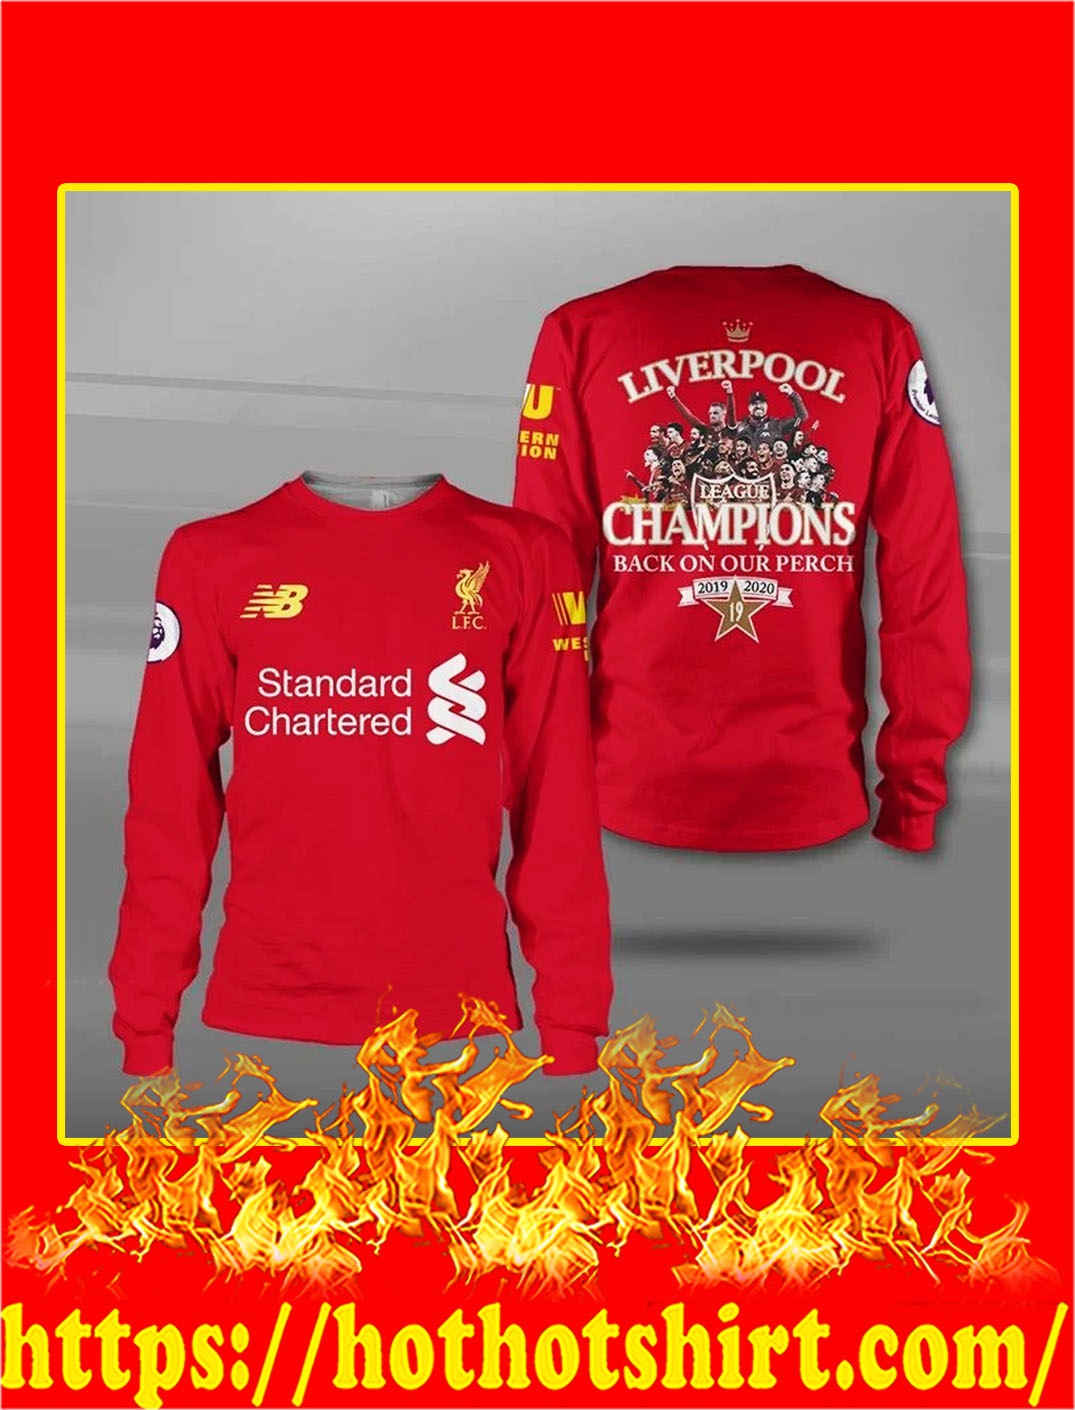 Liverpool champions back on our perch 3d longsleeve tee